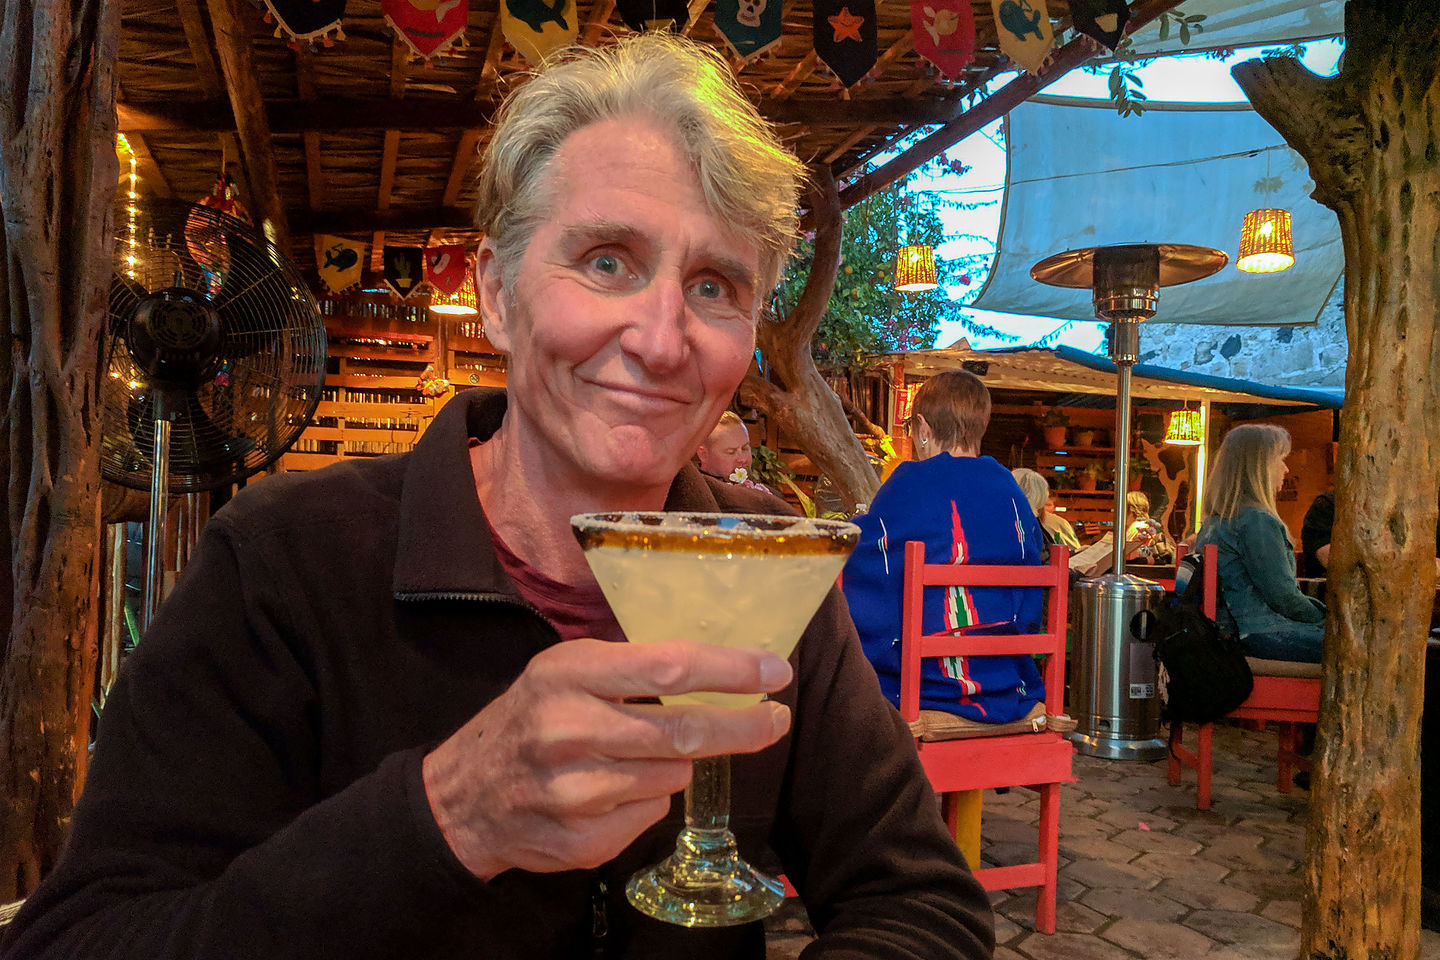 Herb and his margarita